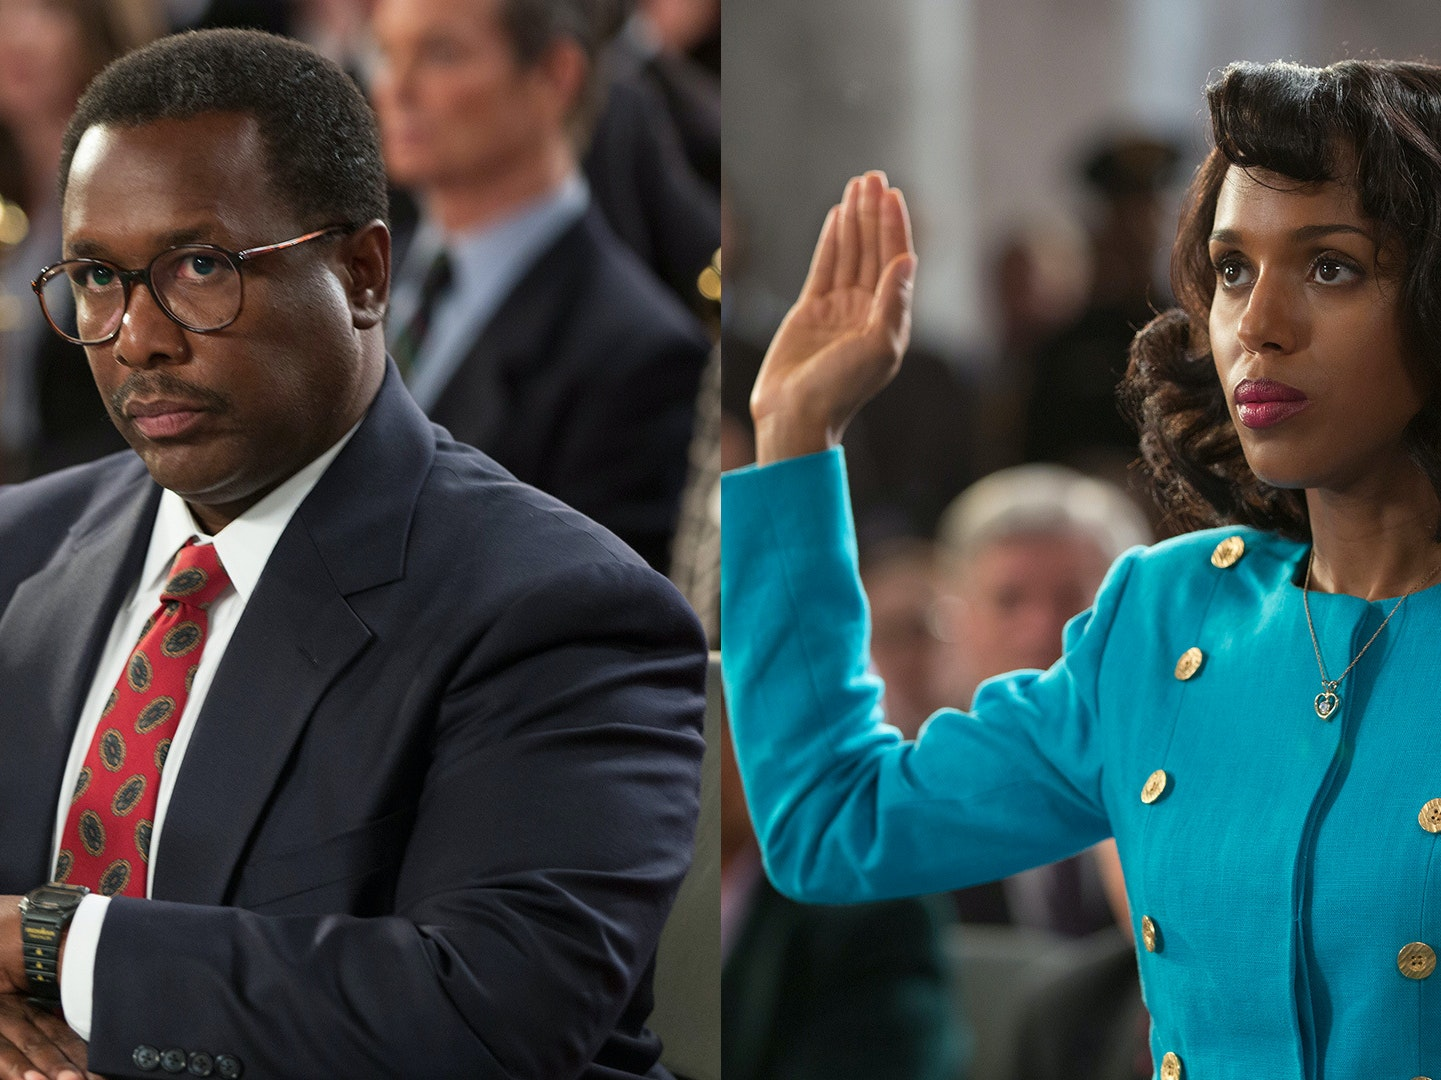 HBO's Anita Hill Film 'Confirmation' Builds on 'The People v. O.J. Simpson'